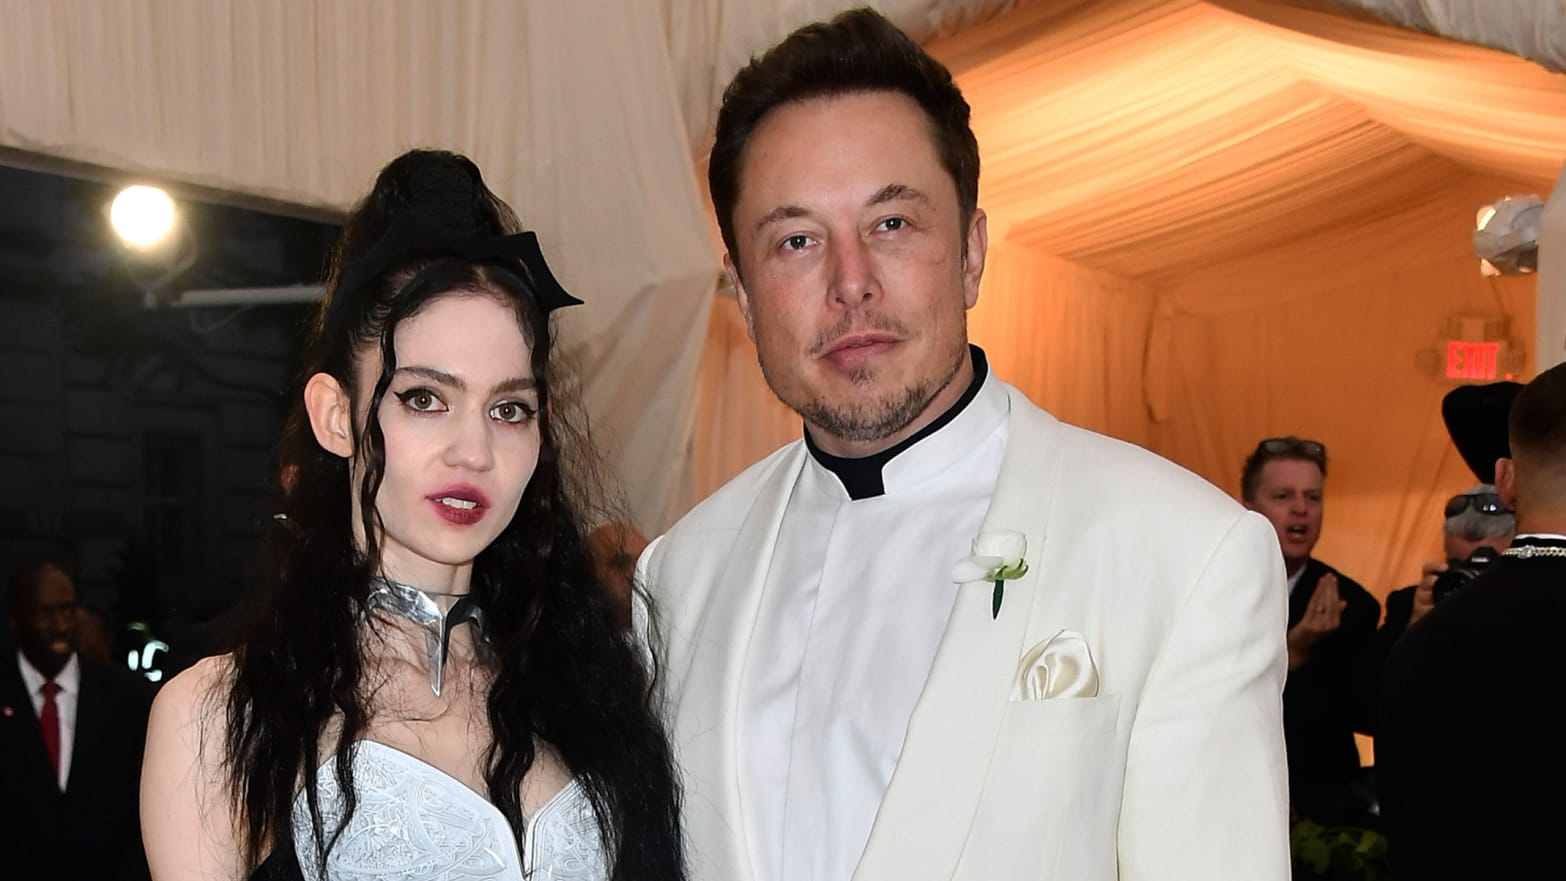 Welcome to the Reality Where Grimes Is Dating Elon Musk